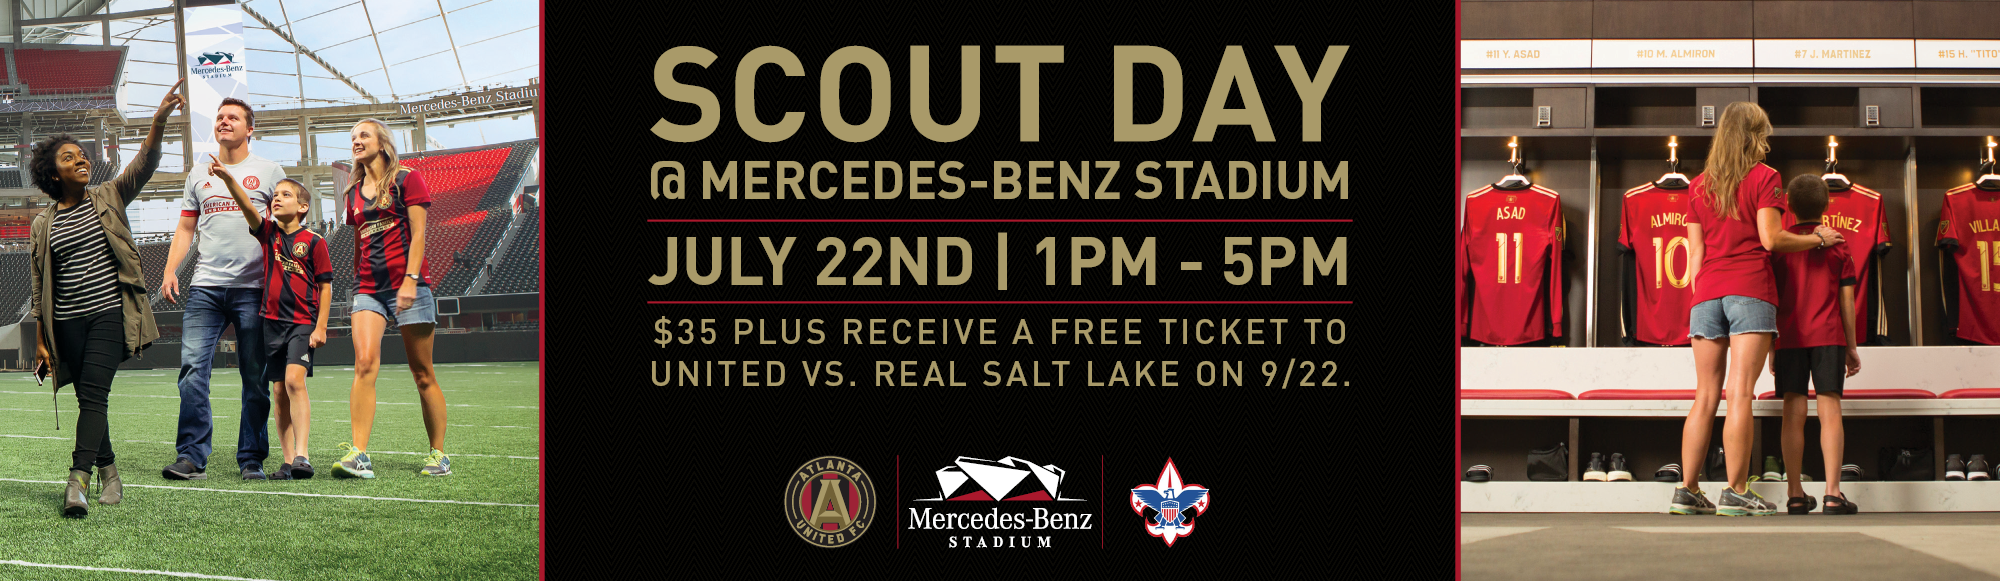 Scout Day at Mercedes Benz Stadium with Atlanta United